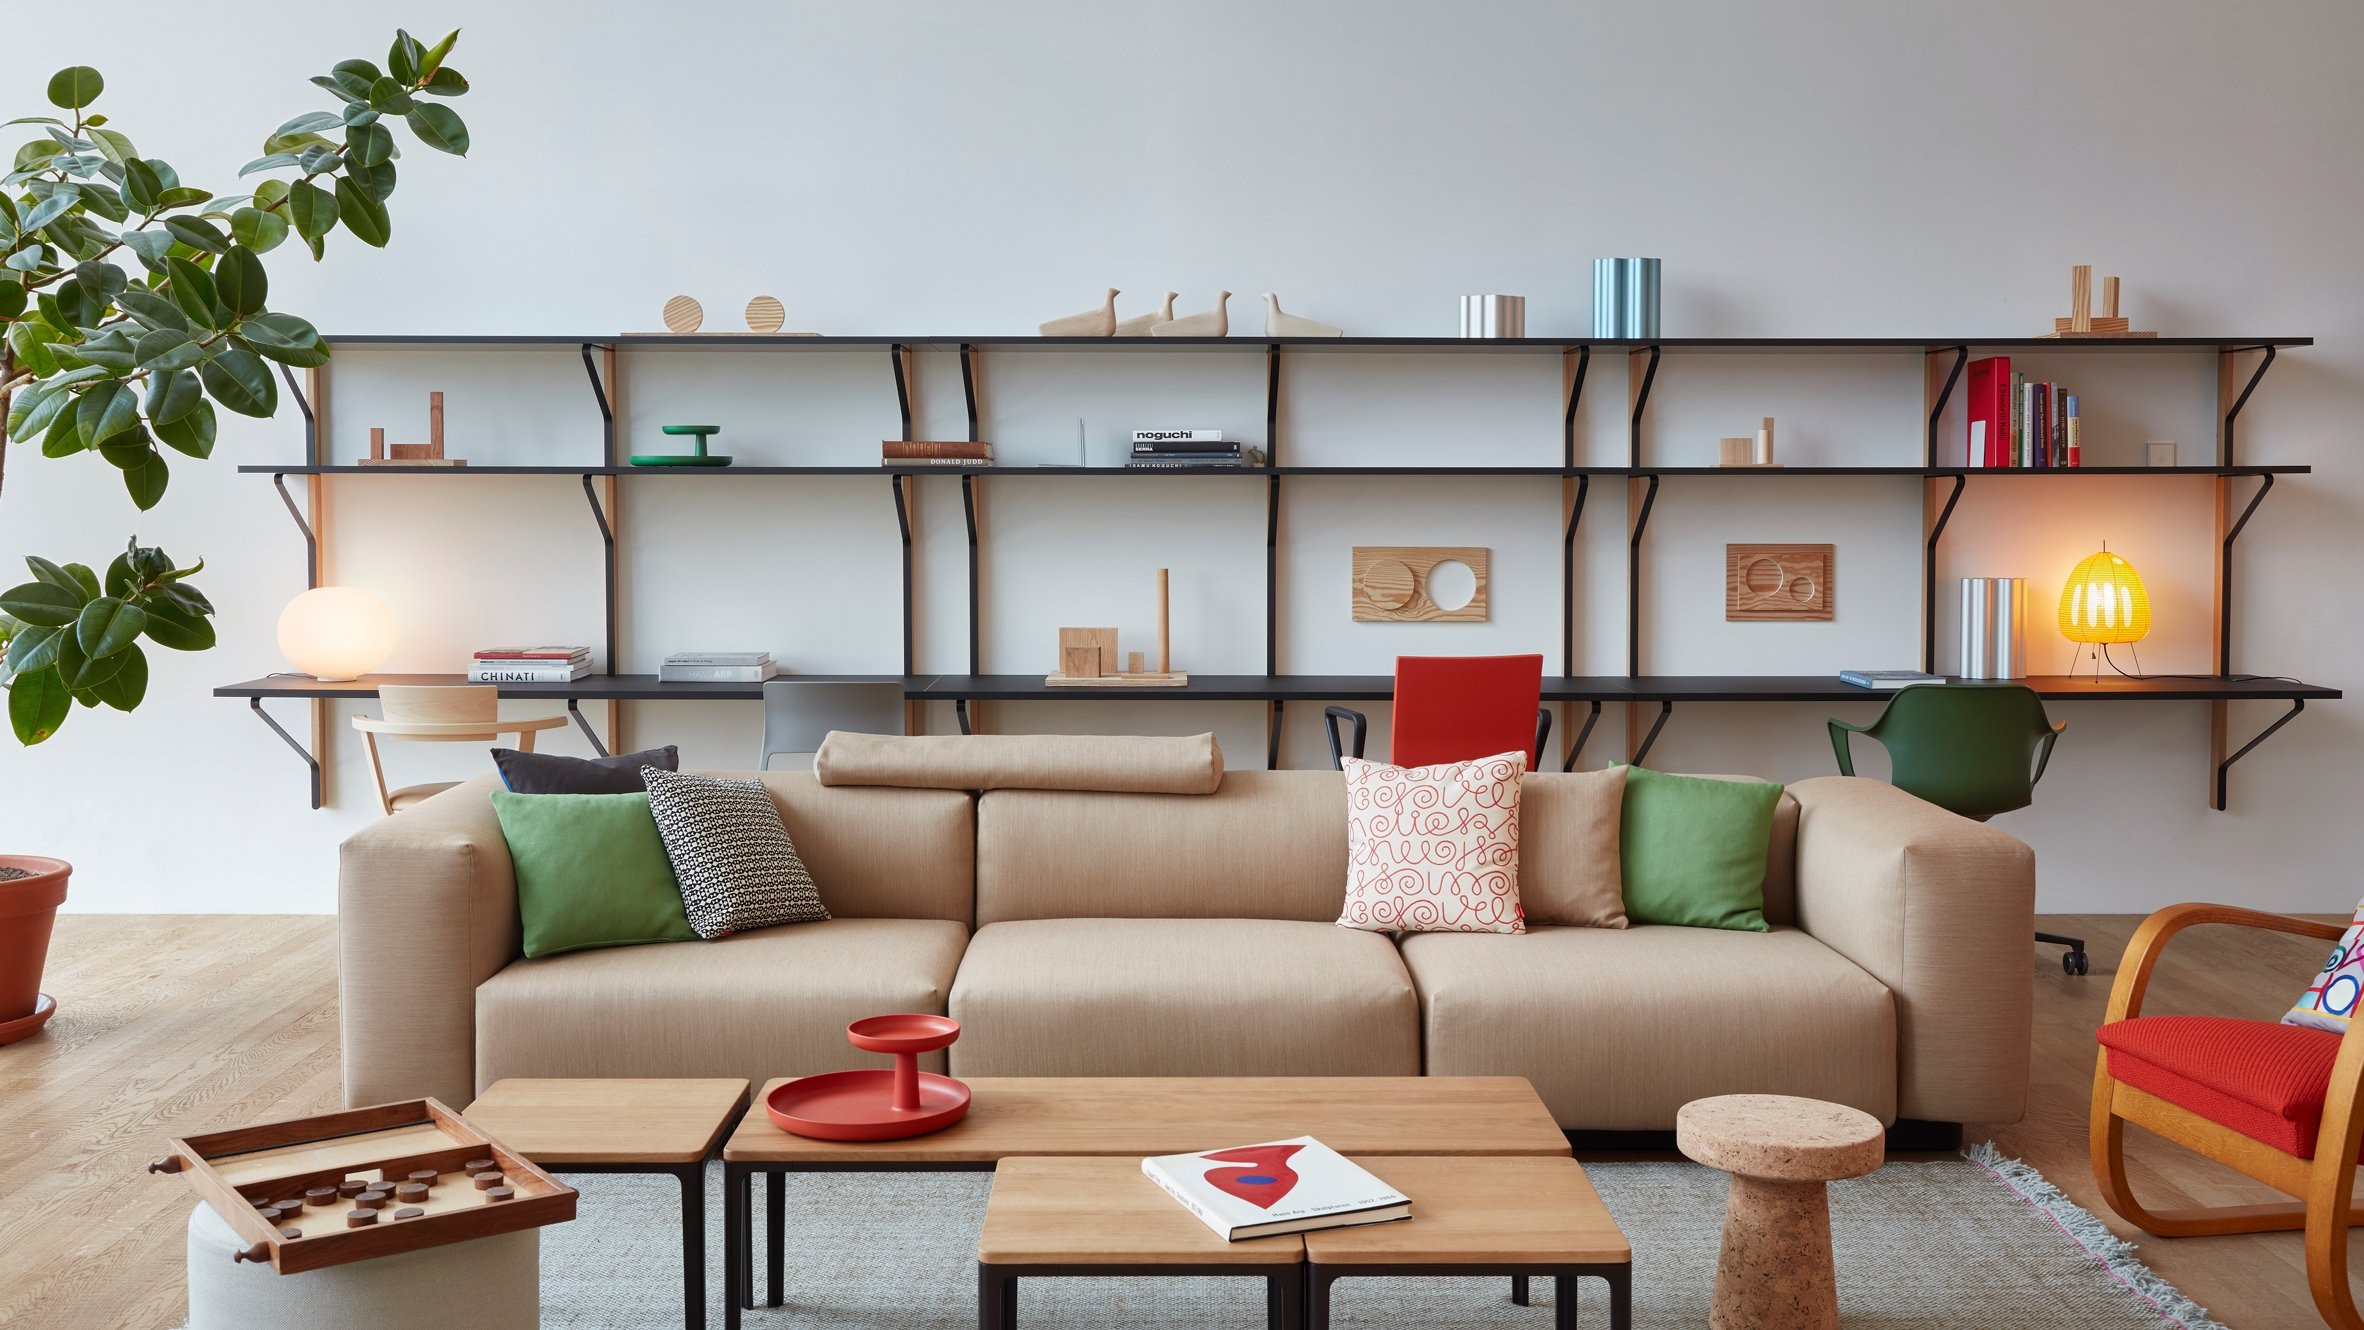 Jasper Morrison Furnishes Vitrahaus For A Fictitious Abstract Artist